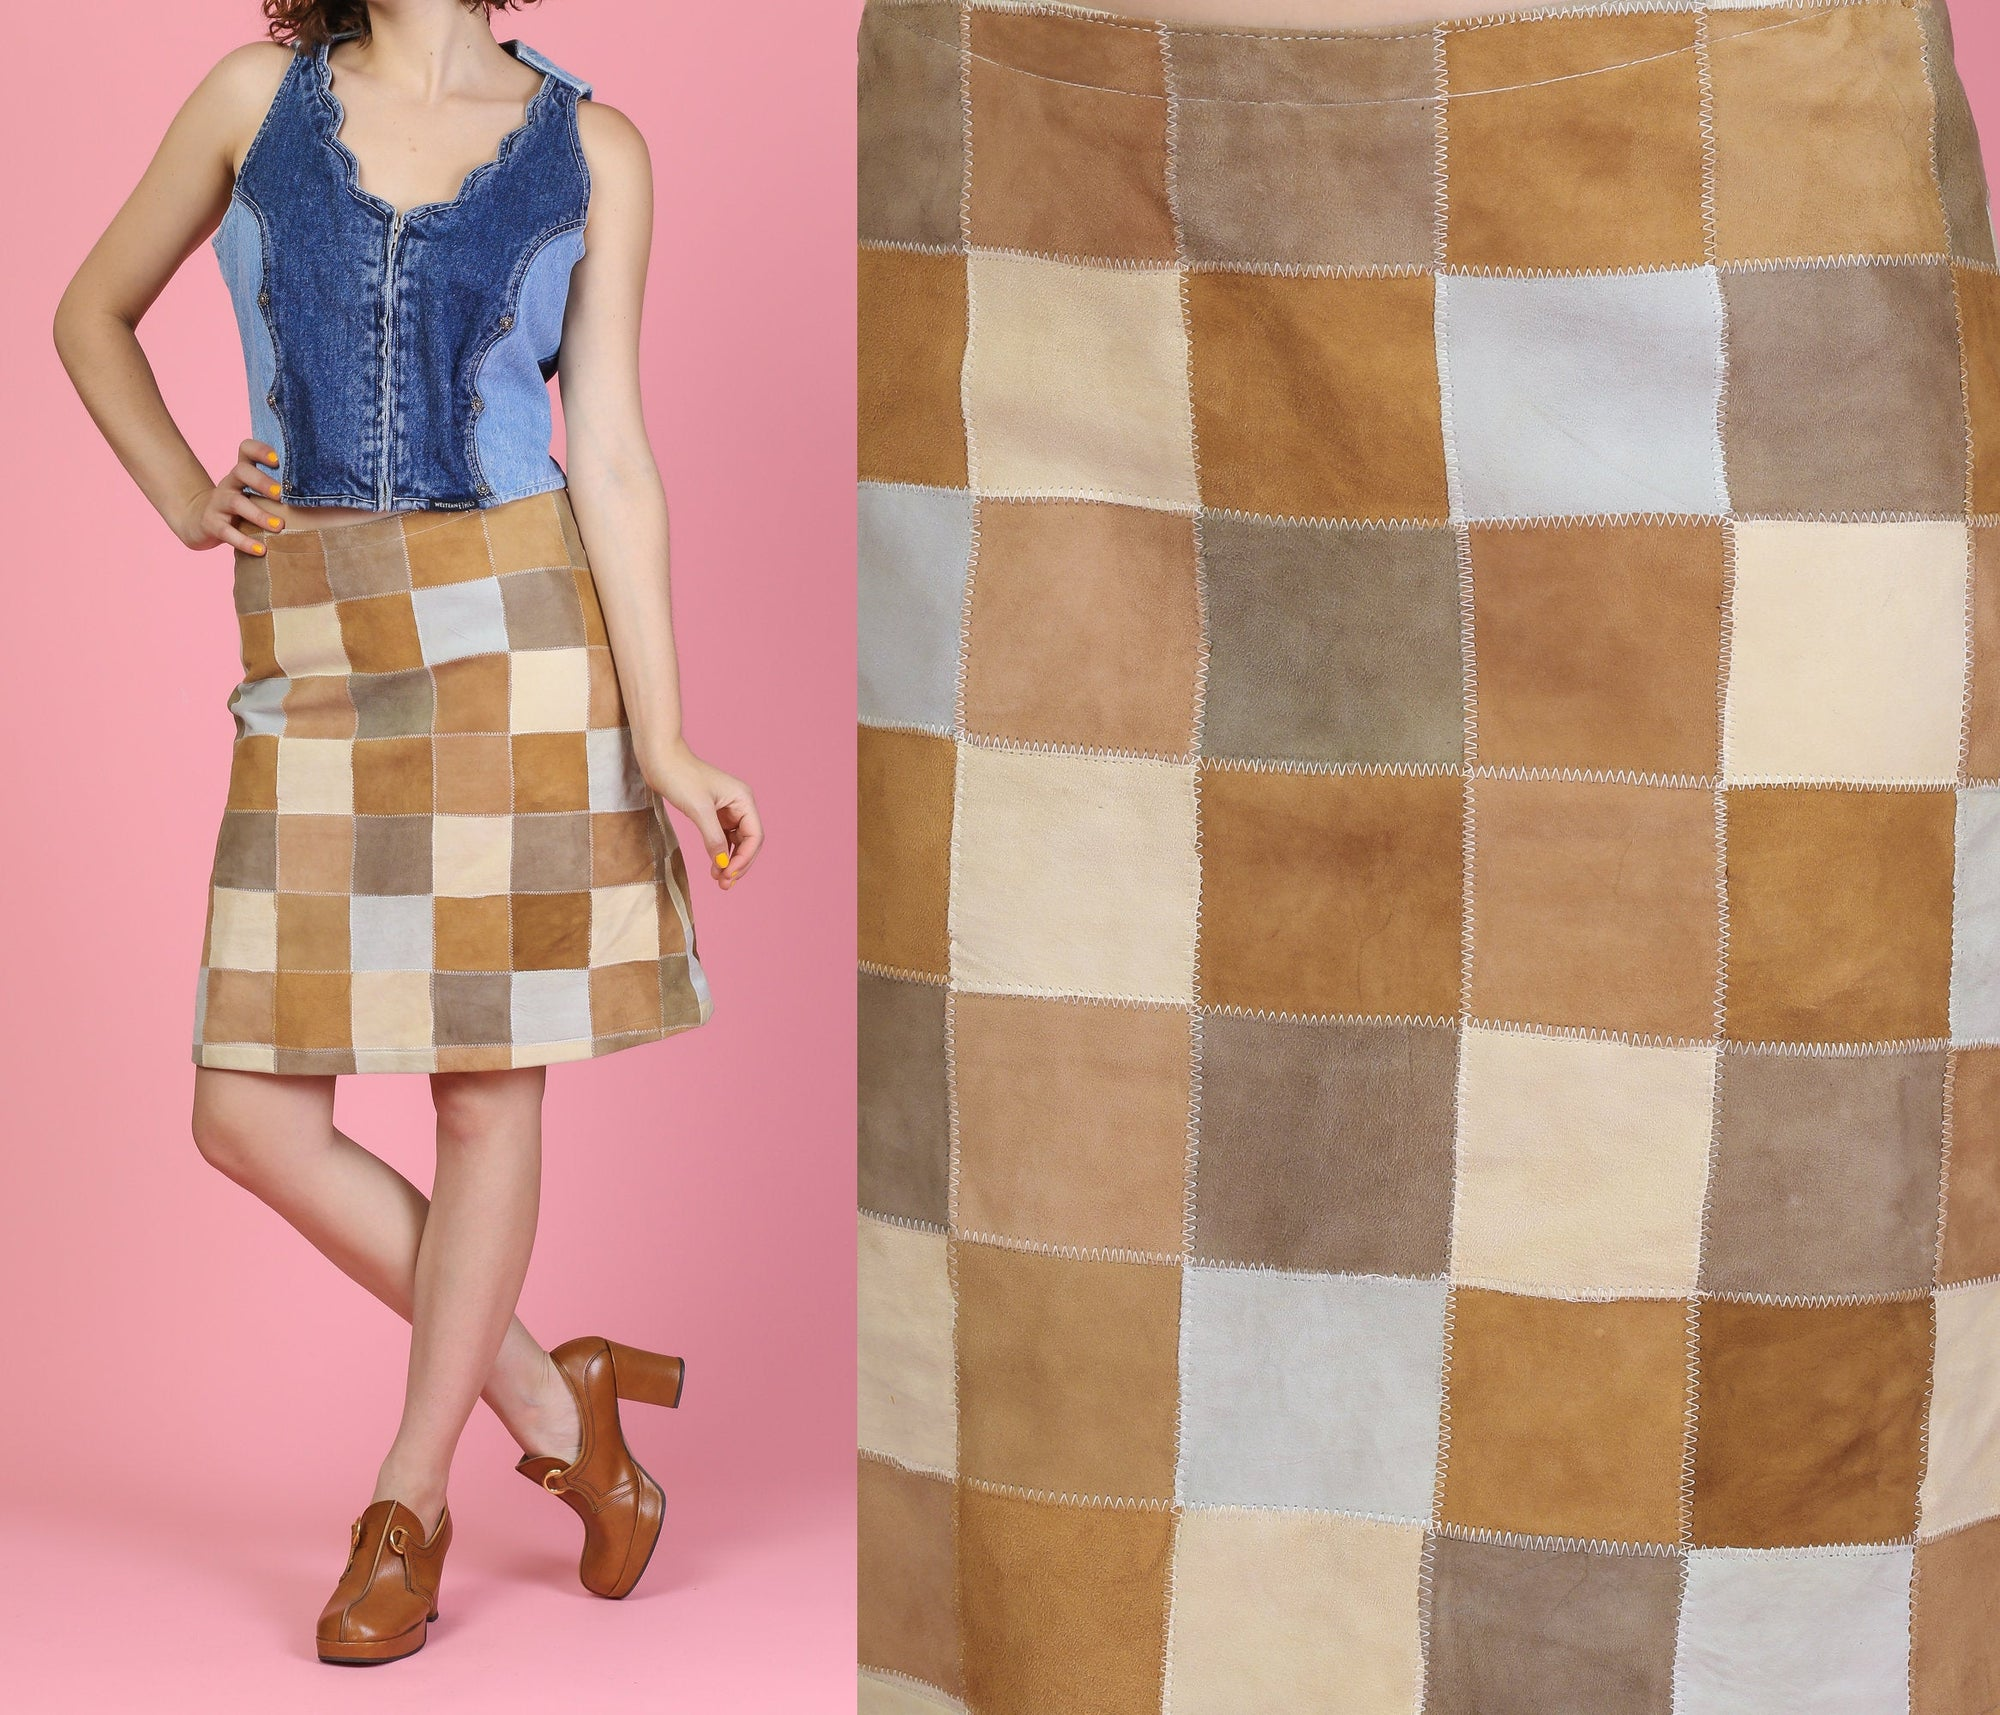 Vintage 90s Does 70s Suede Patchwork Skirt - Medium to Large